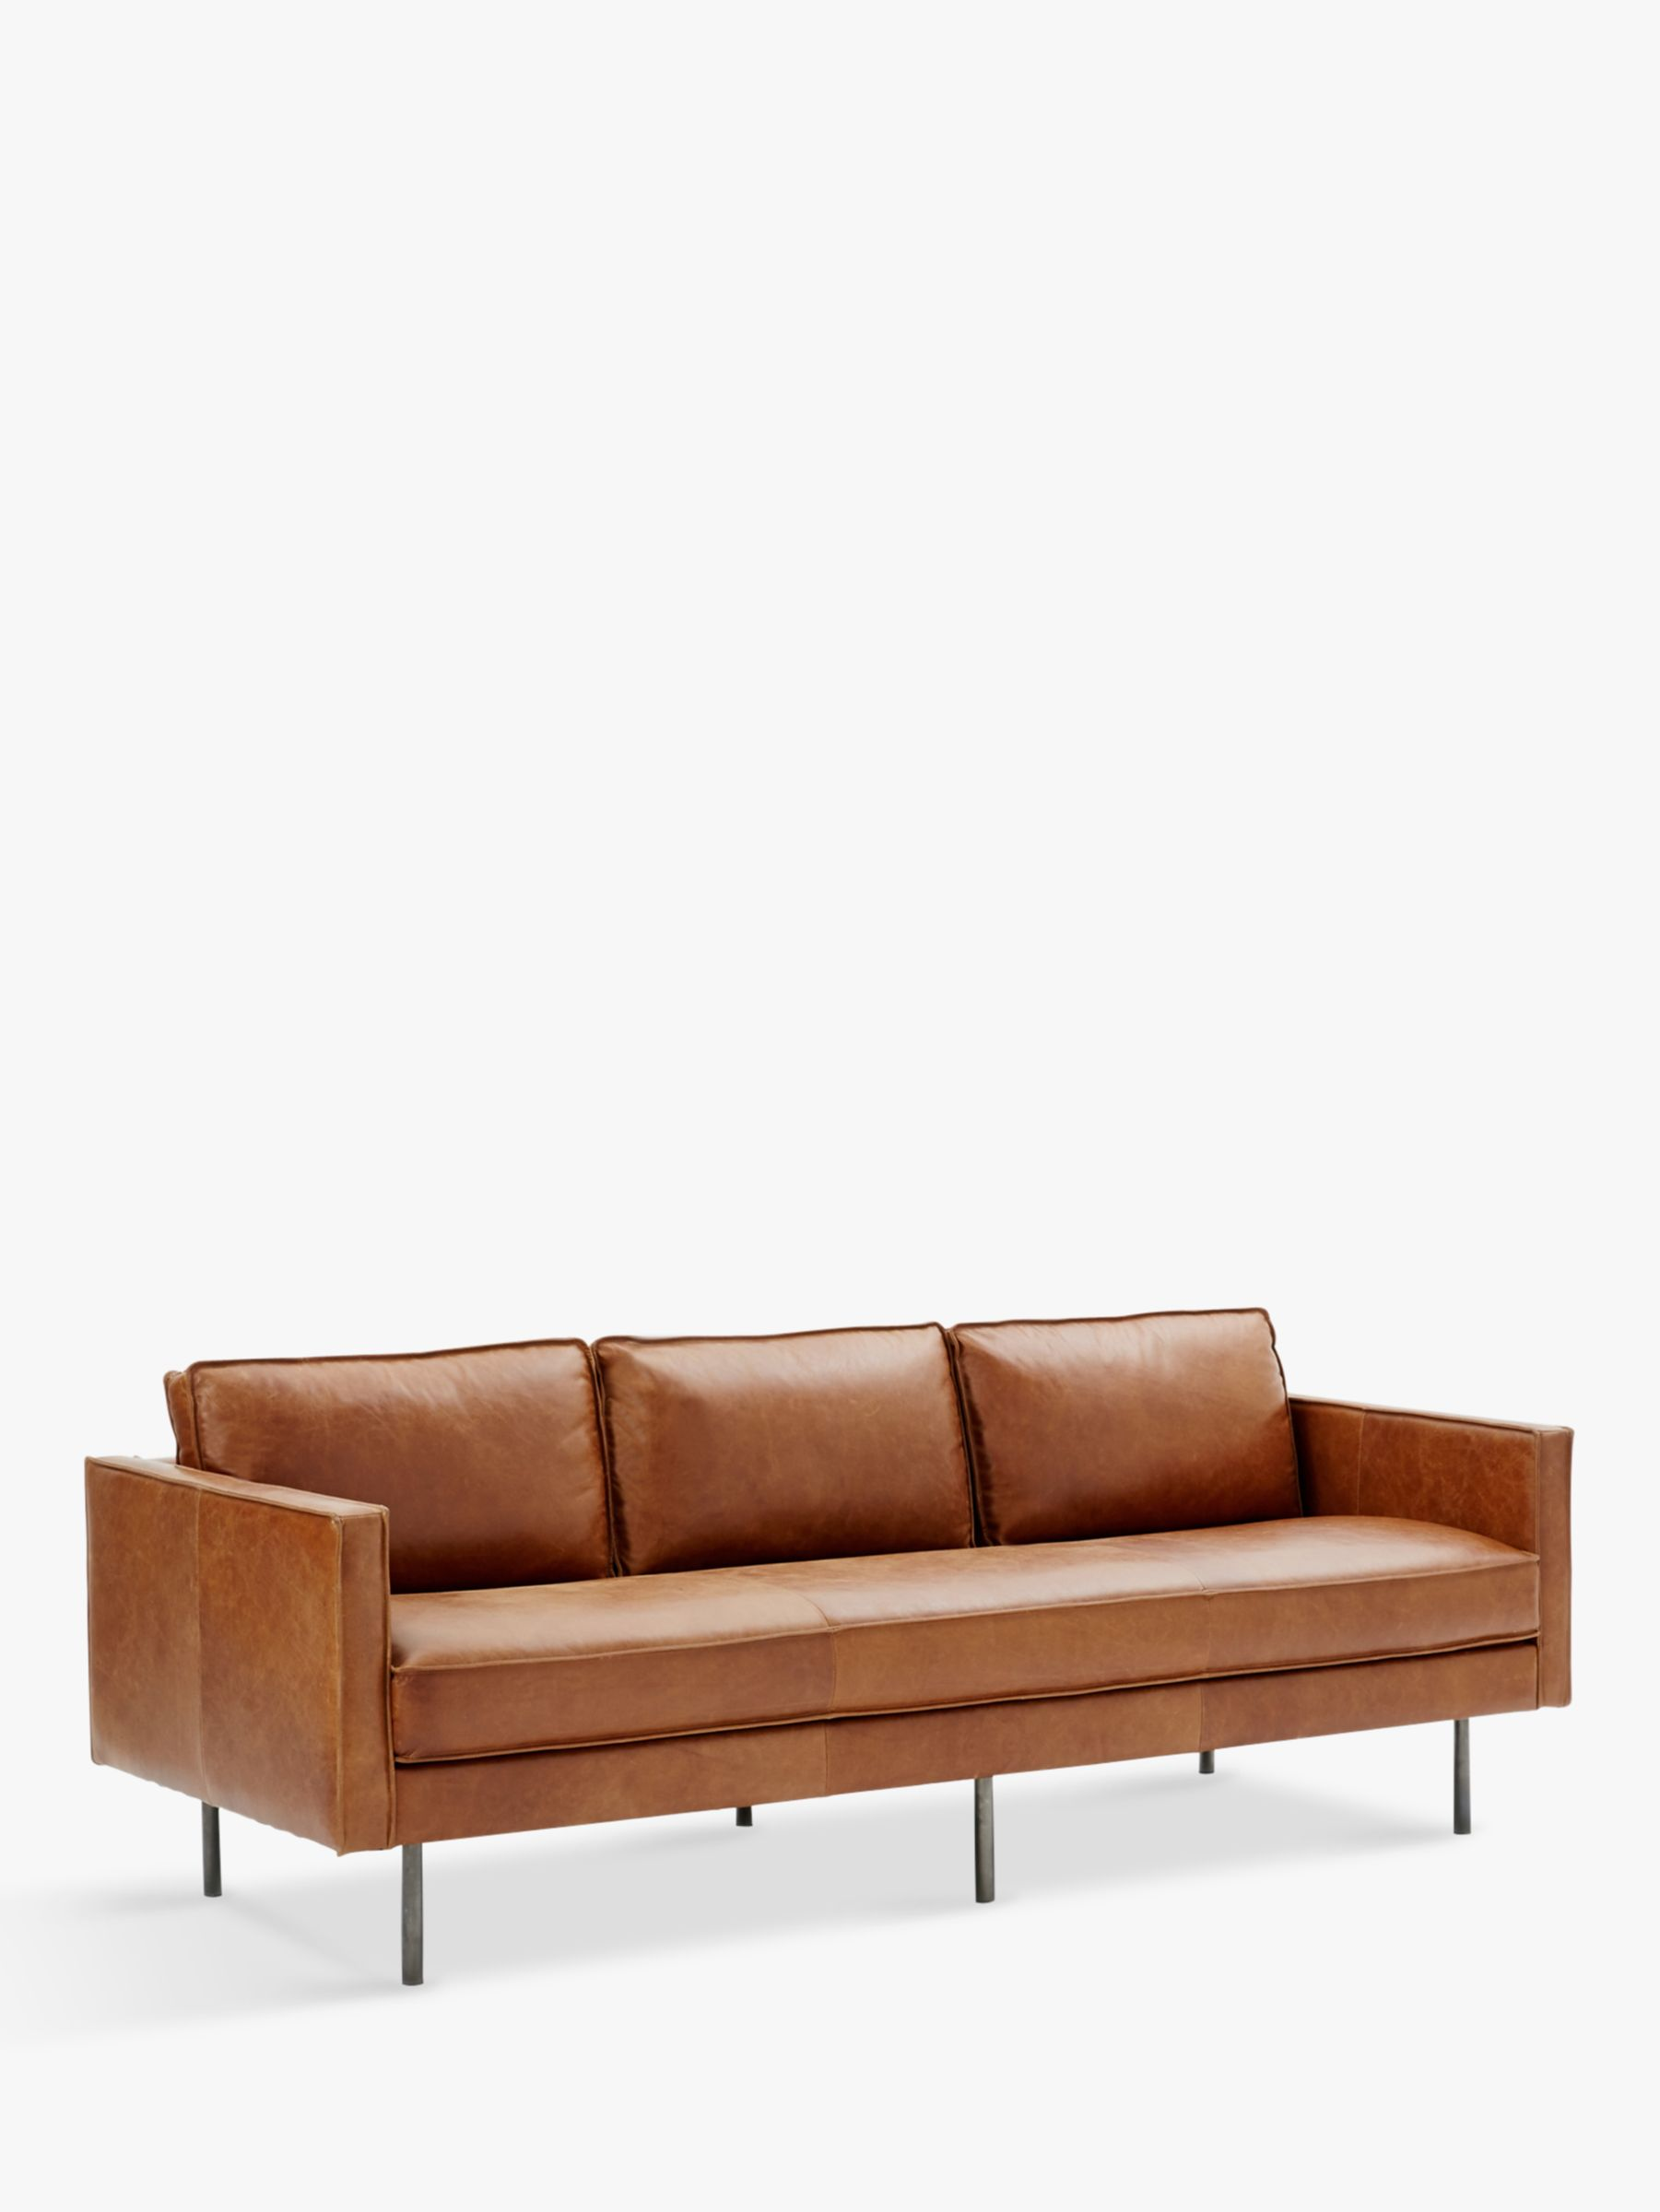 west elm leather sofa reviews sam s club power recliner axel large 3 seater sienna at john